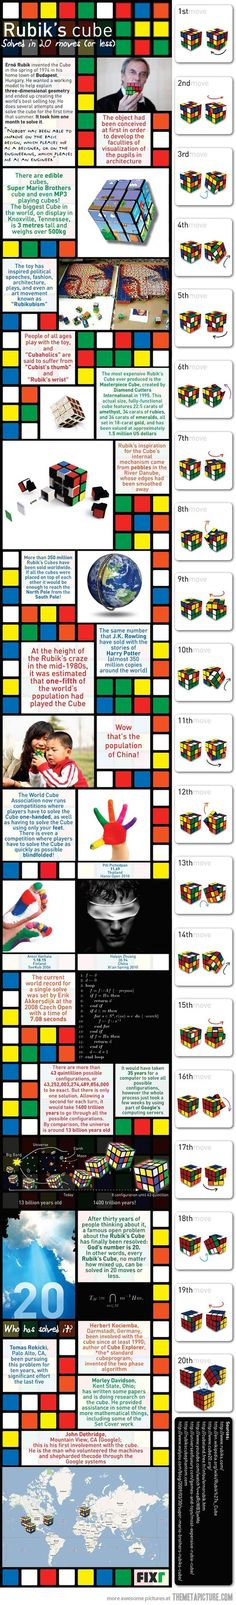 Rubik's cube solved in 20 moves…